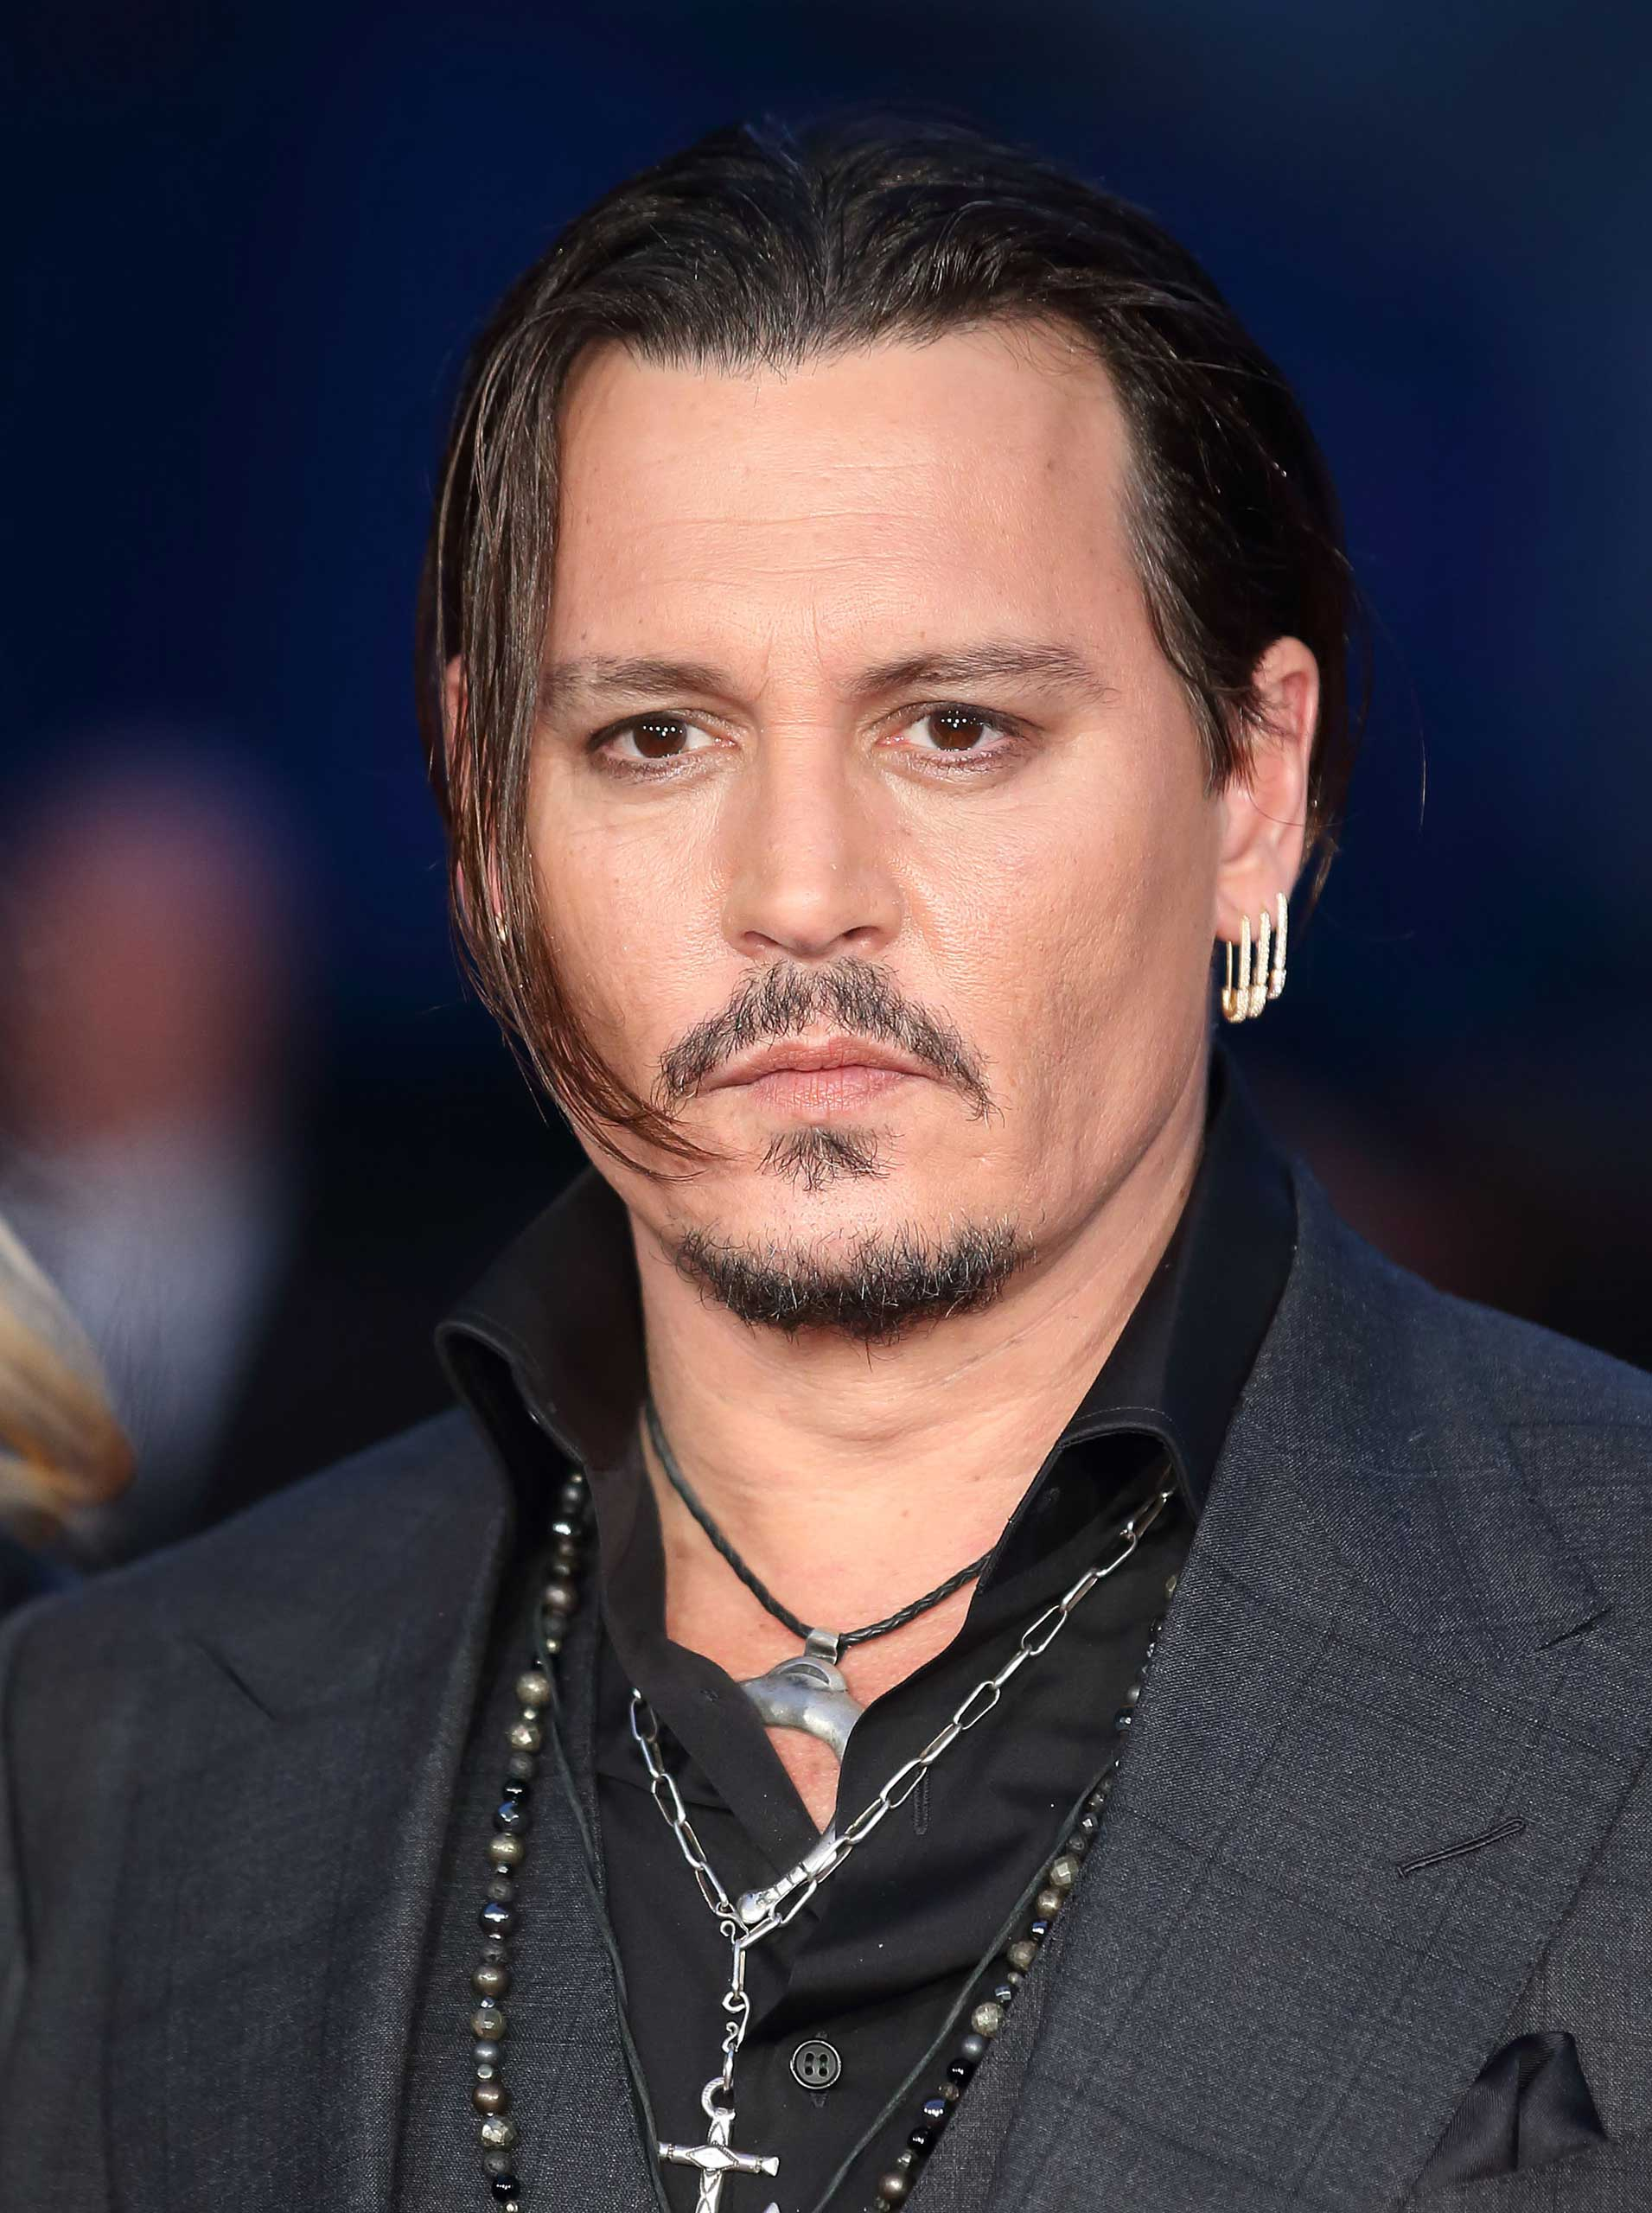 Johnny Depp attends a screening of  Black Mass  during the BFI London Film Festival at Odeon Leicester Square in London, on Oct. 11, 2015.